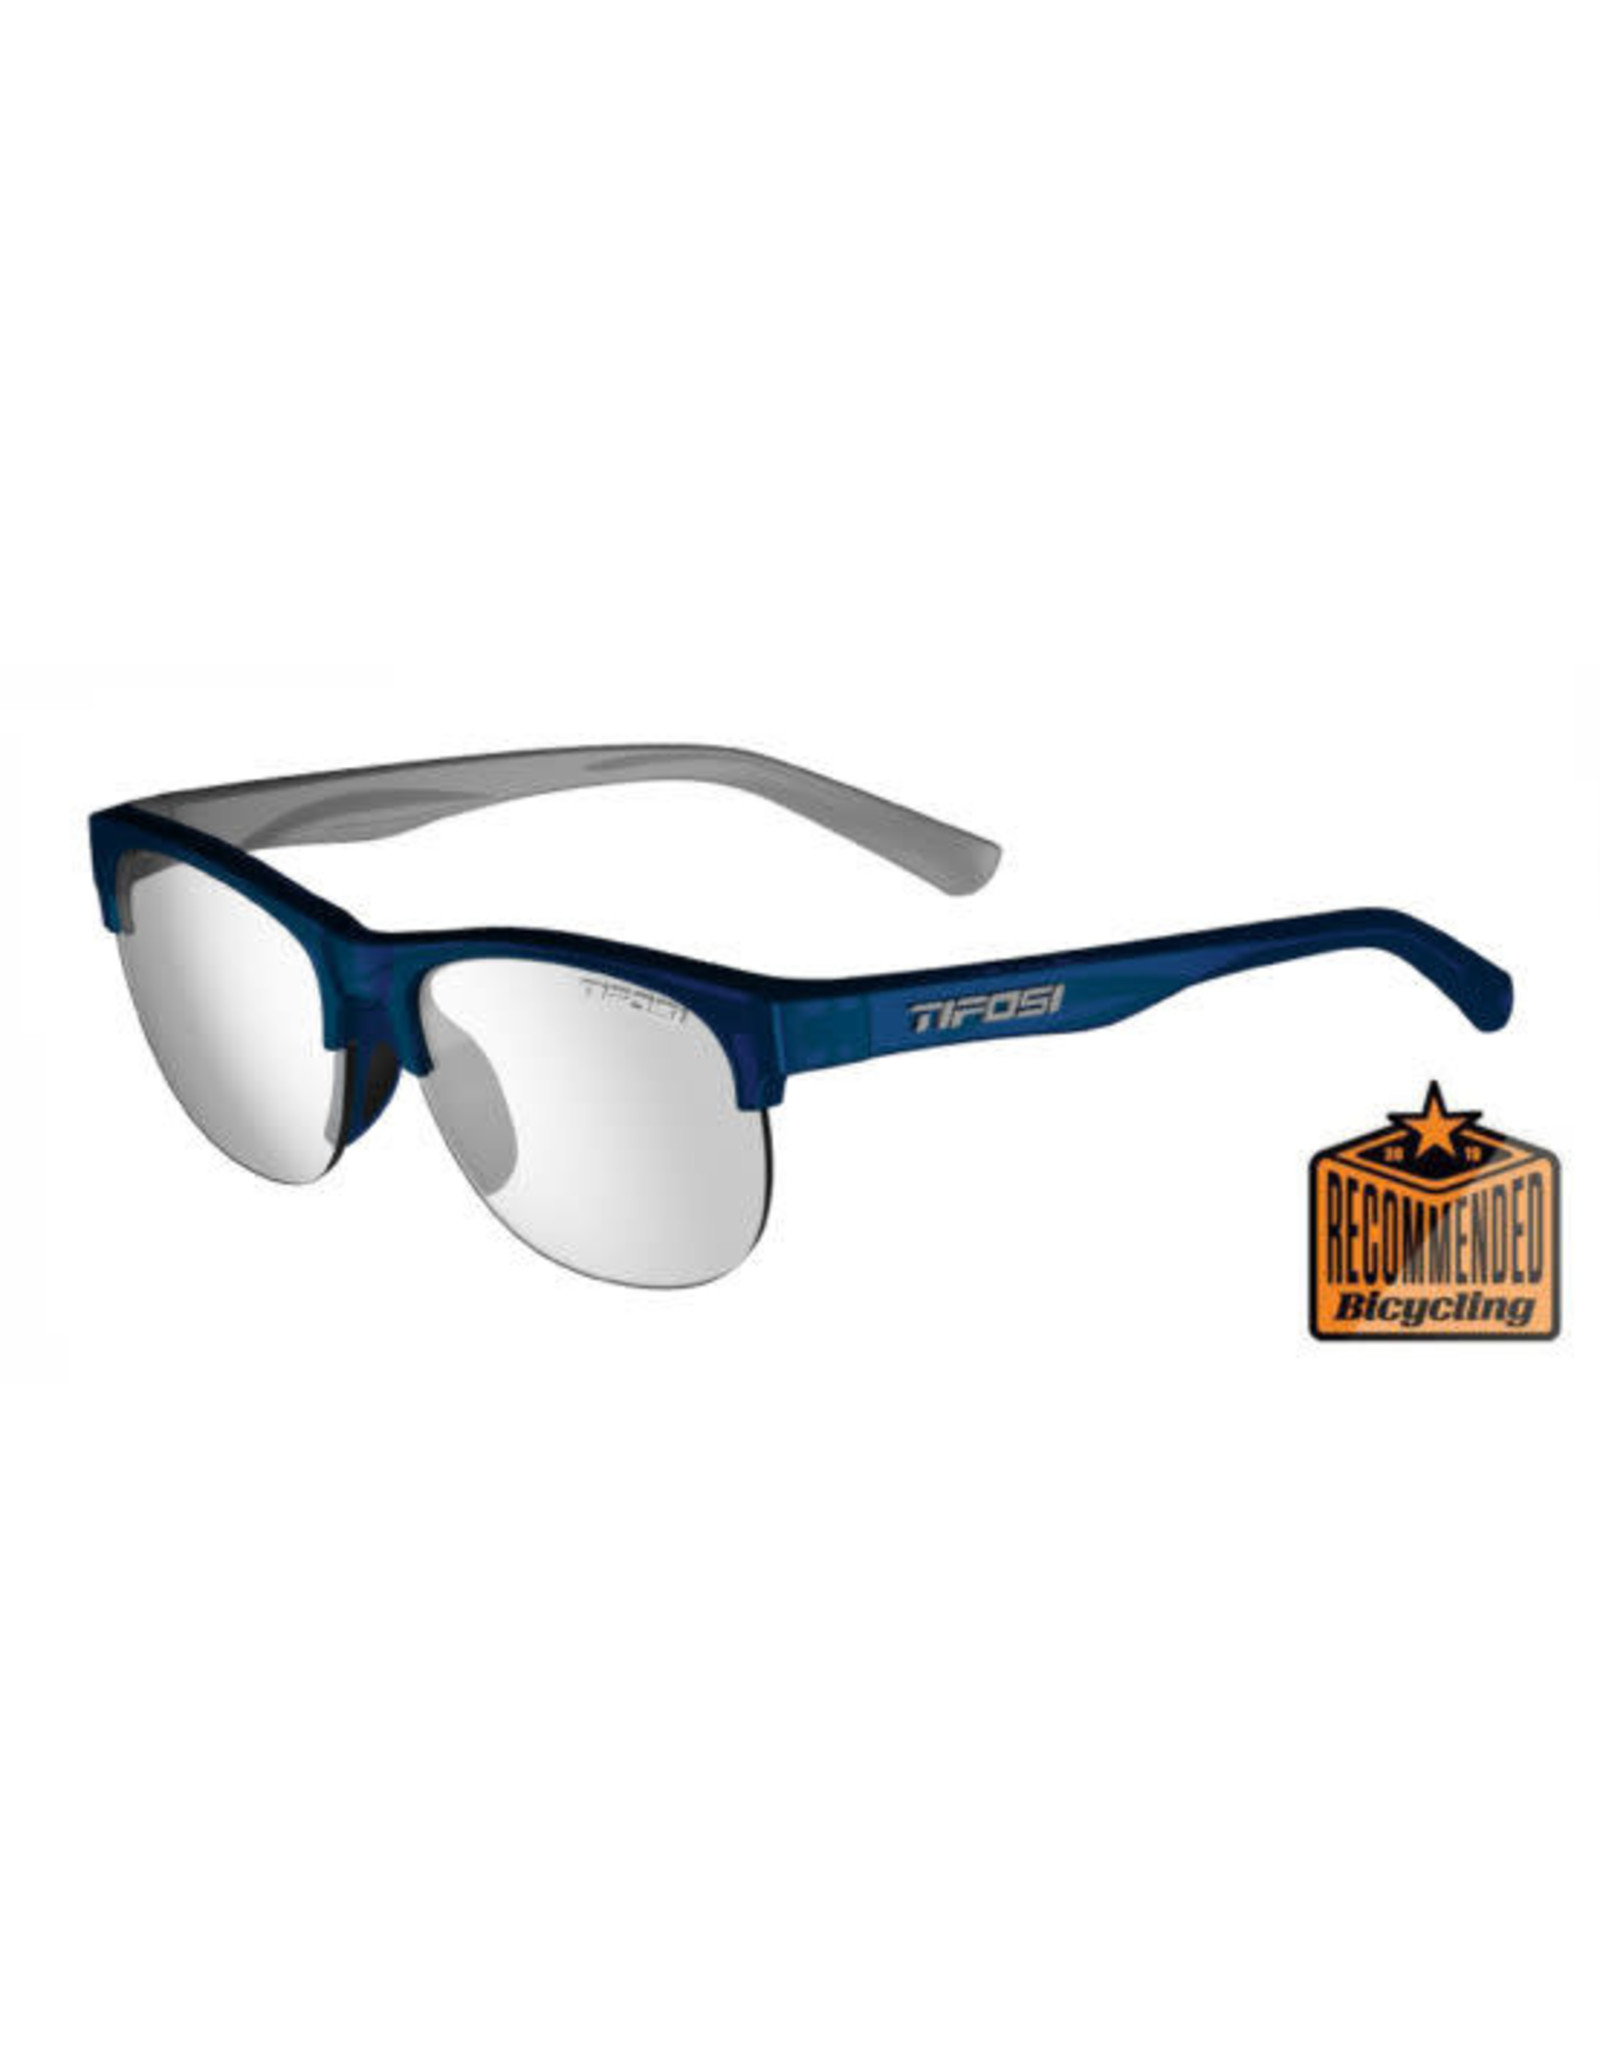 Tifosi Optics Swank SL, Midnight Navy Fototec Glasses